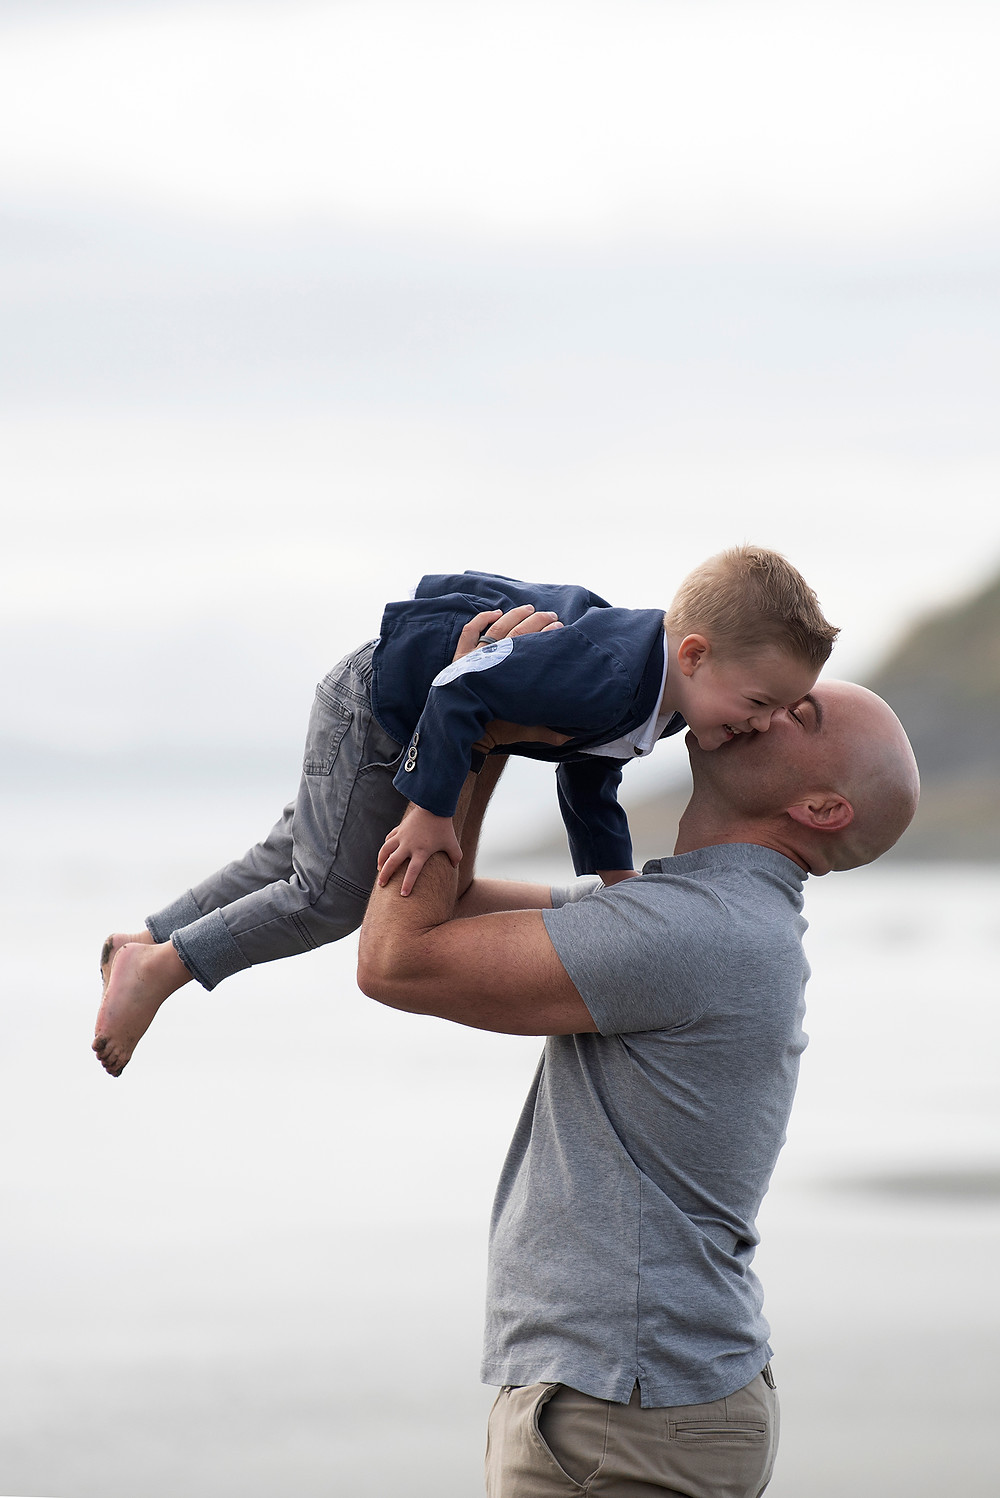 Father holds son in the air during a family photography session. Photographed by Kaitlyn Shea.